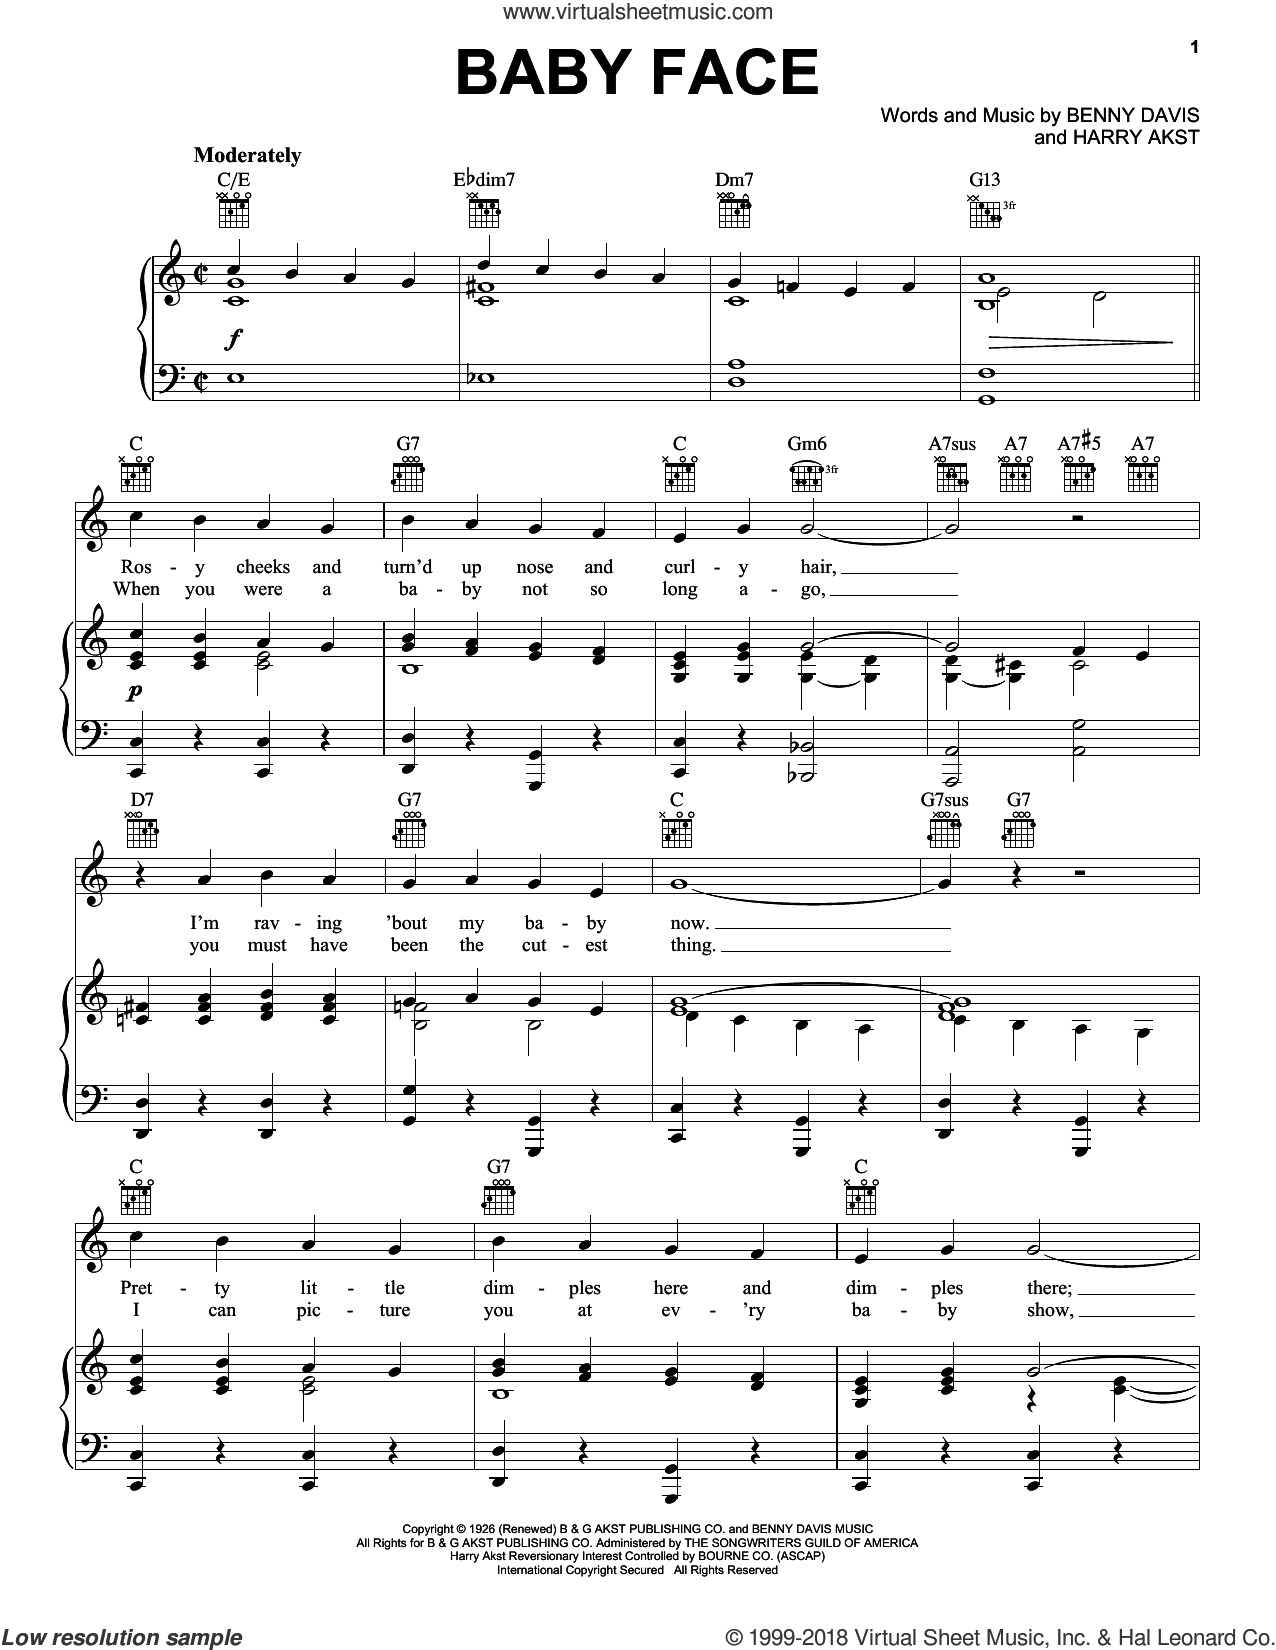 Baby Face sheet music for voice, piano or guitar by Harry Akst, Bobby Darin, Little Richard, Wing & A Prayer Fife & Drum Cp and Benny Davis, intermediate skill level